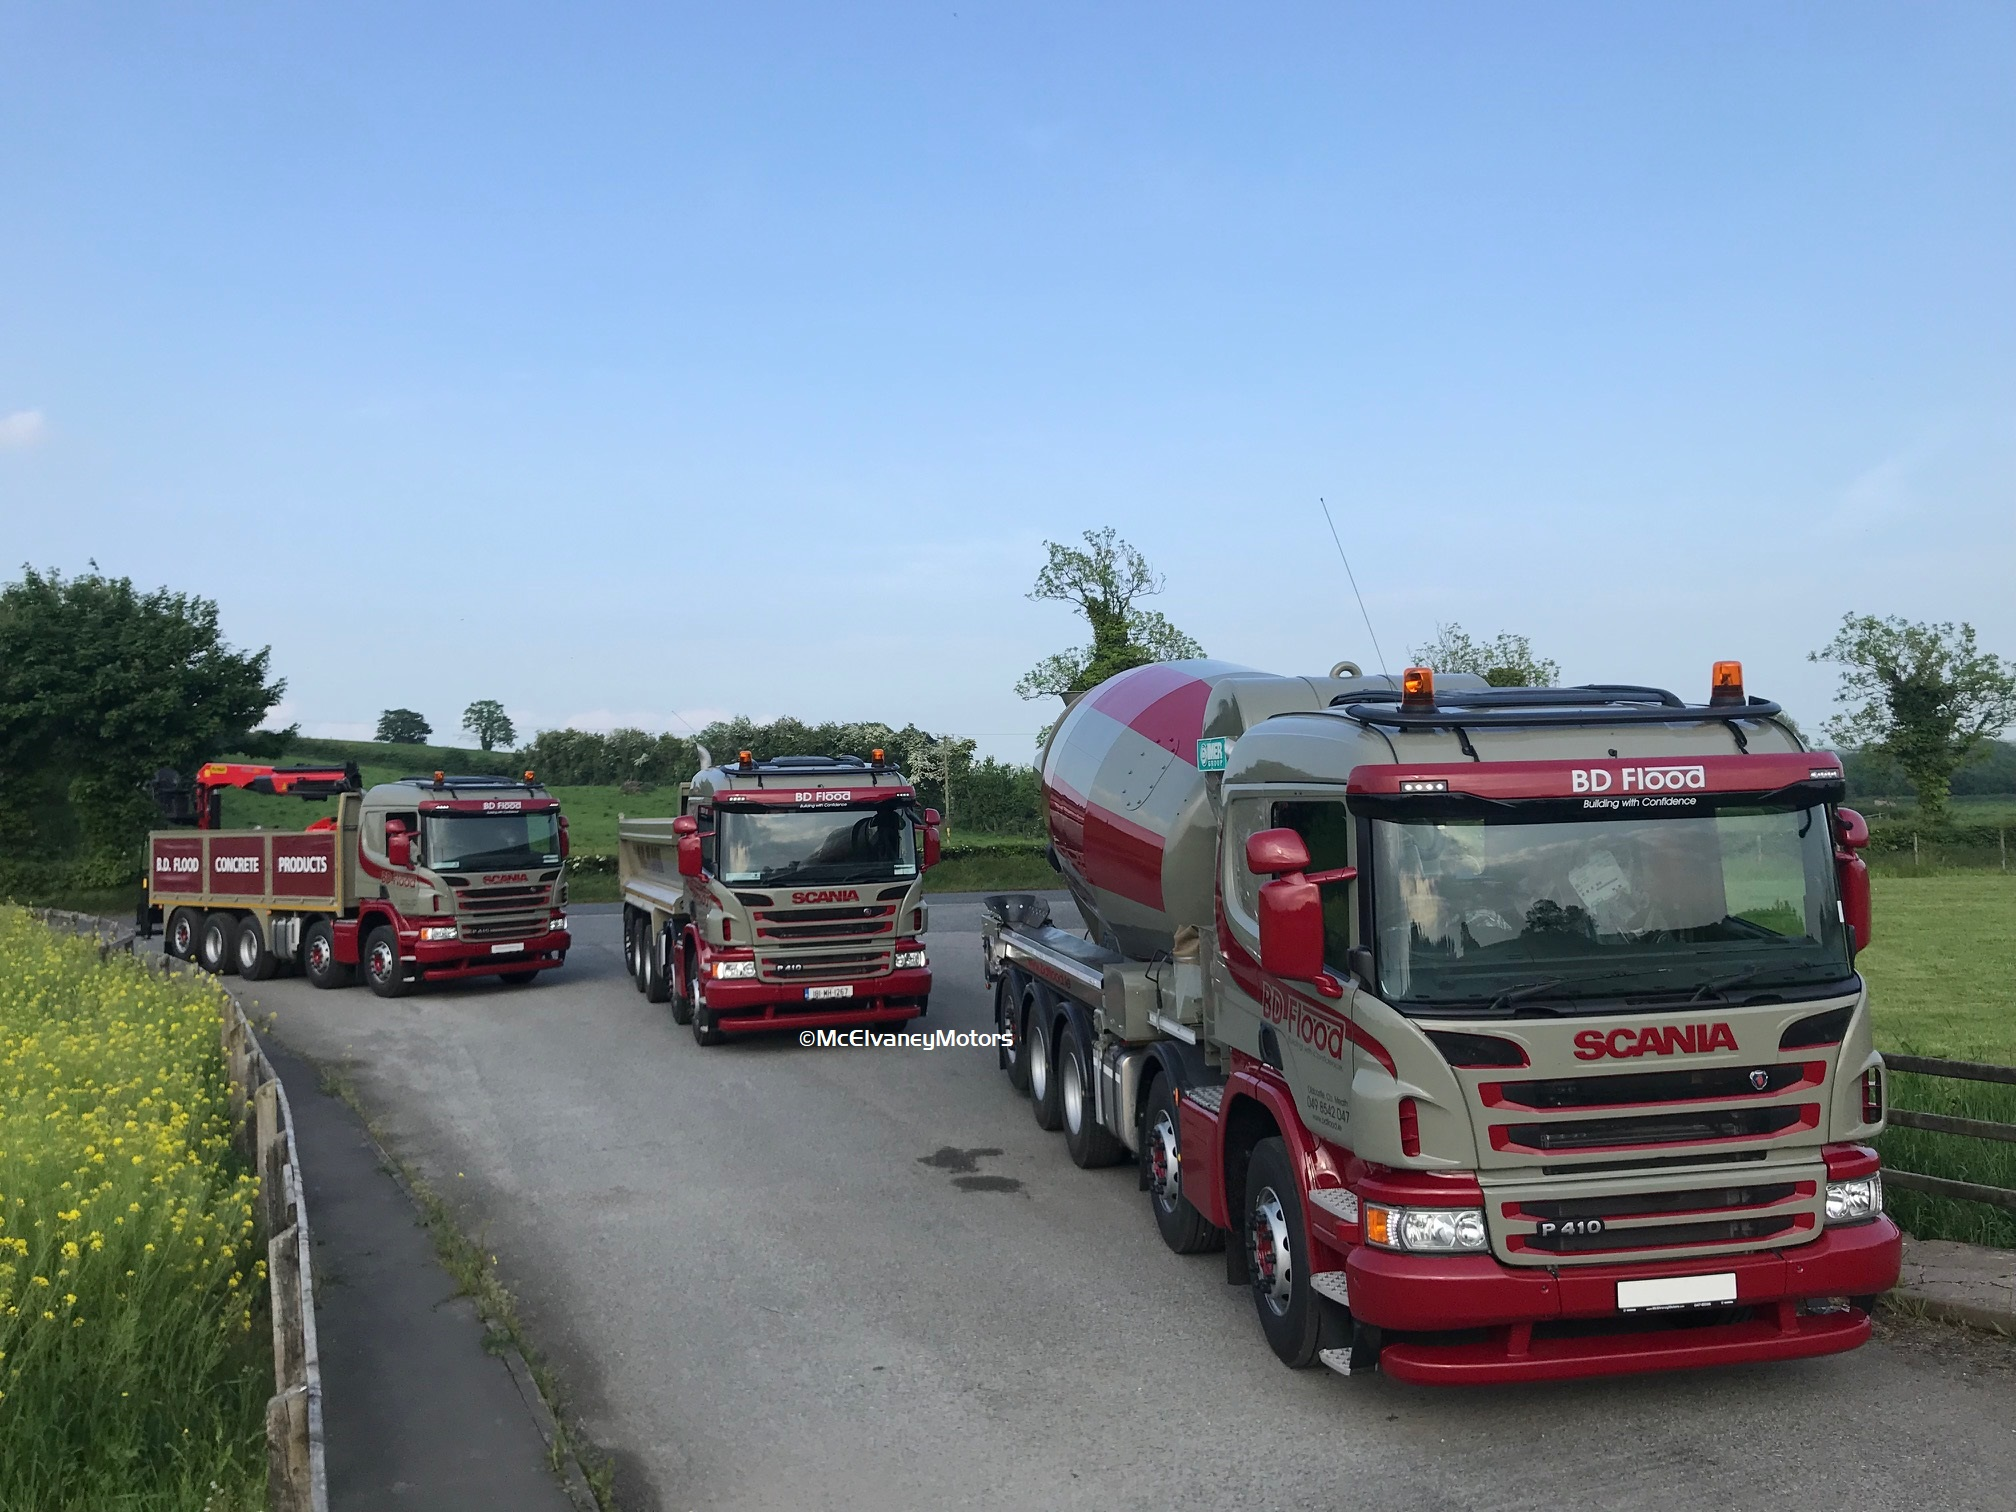 Three New Scania P410s for BD Flood